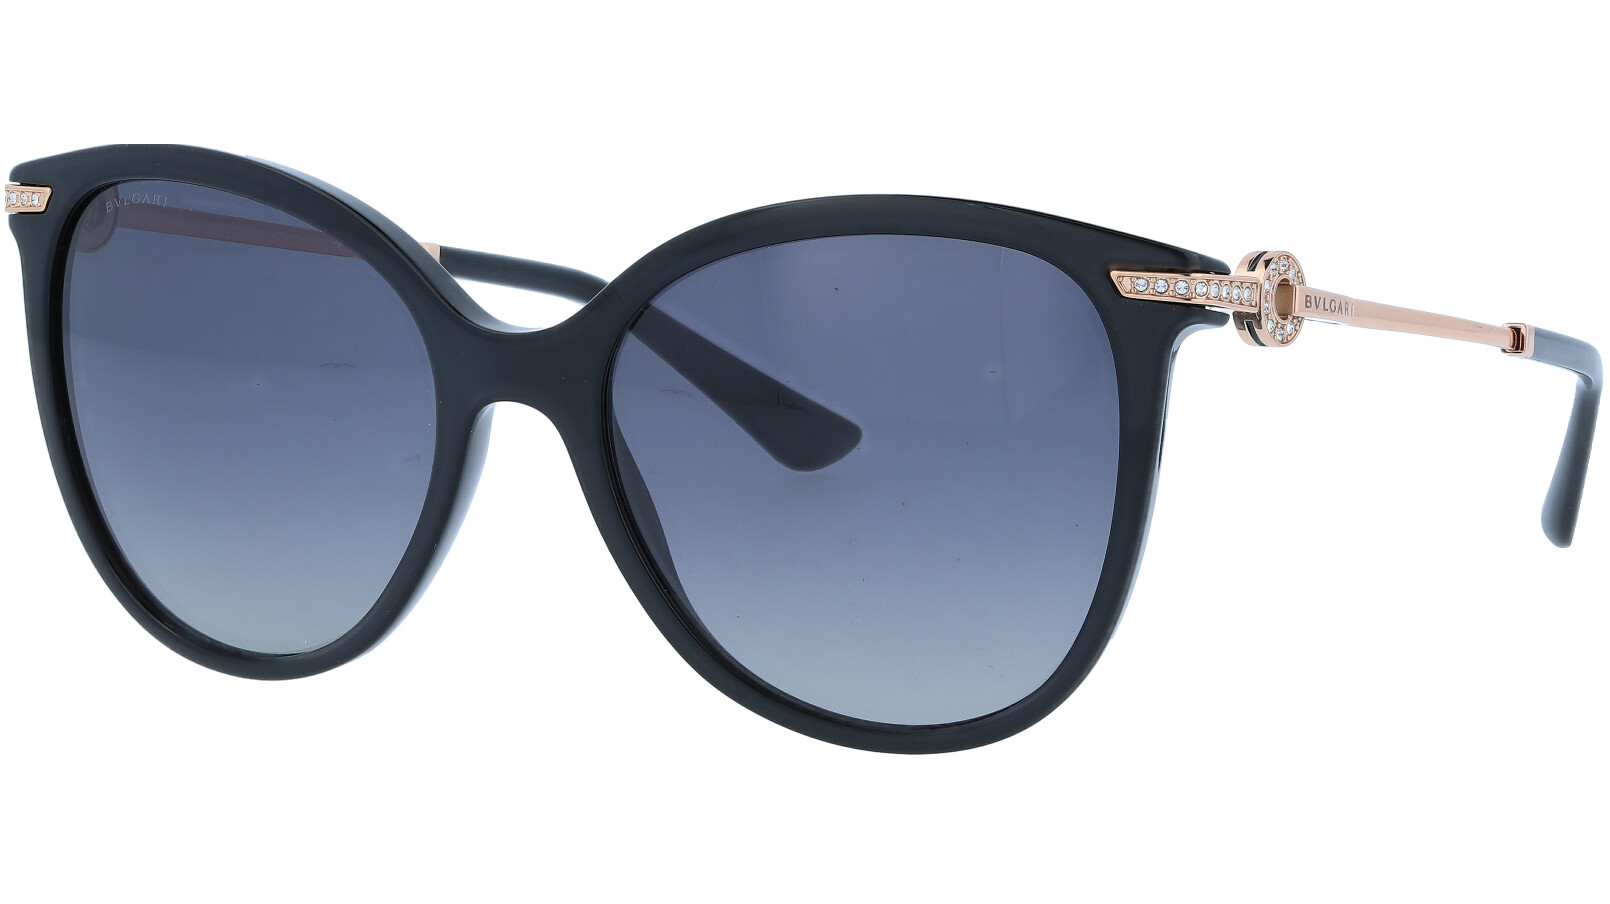 BVLGARI BV8201B 501T33P 55 BLACK Sunglasses